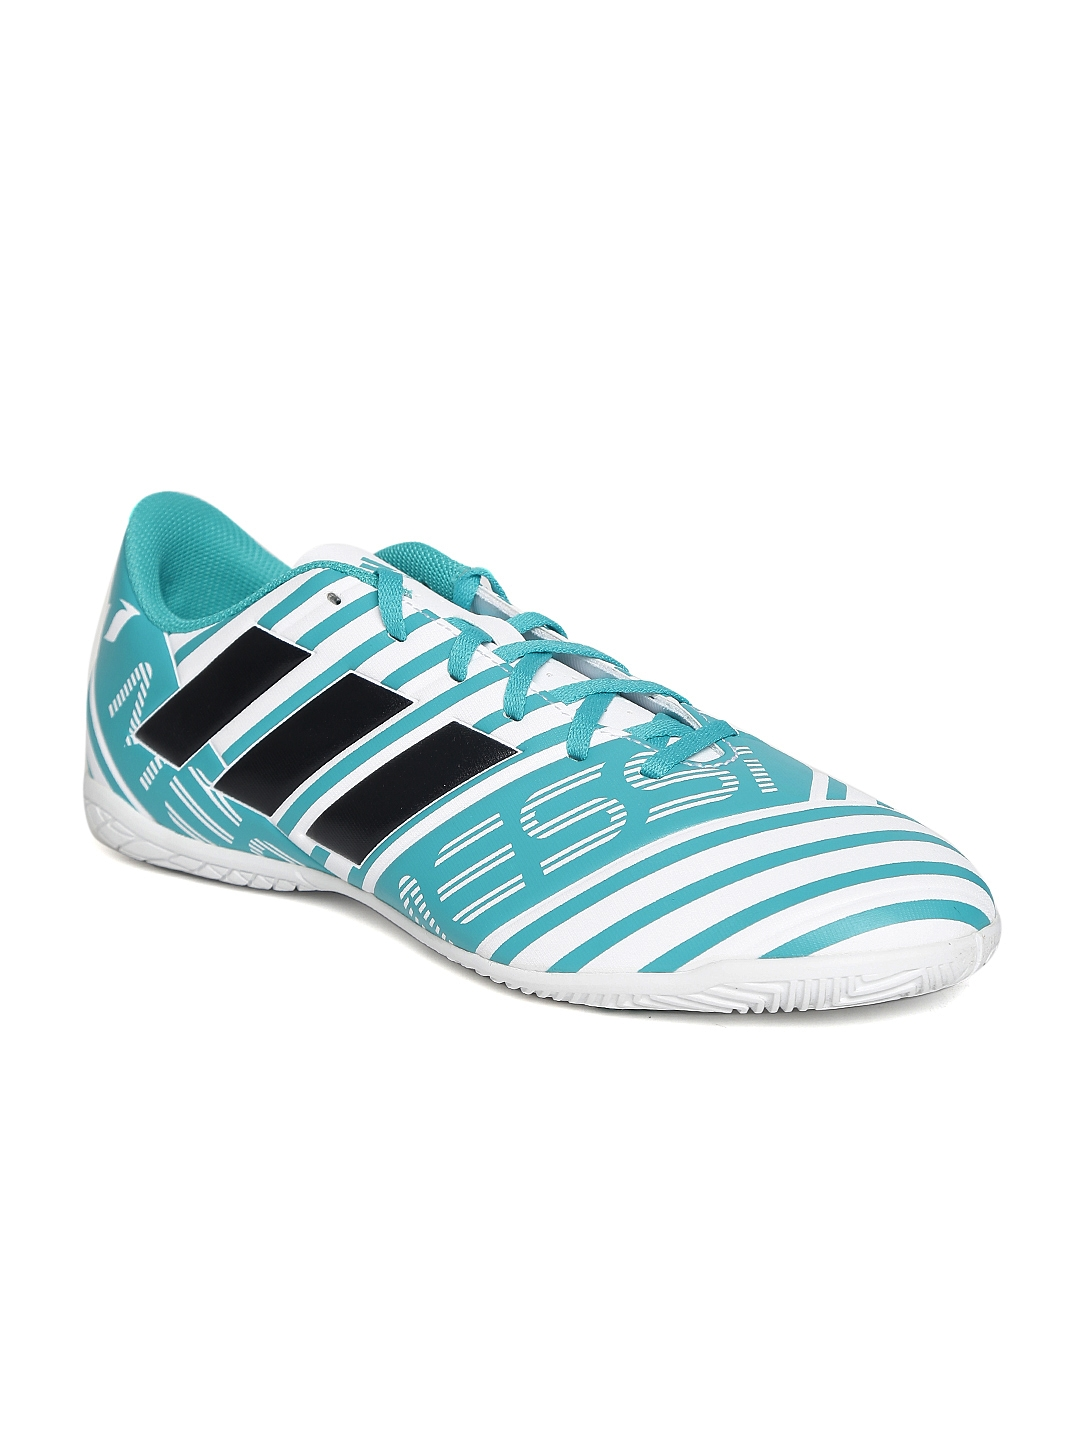 2398c9449d2d Buy ADIDAS Men White   Teal Blue NEMEZIZ MESSI 17.4 IN Football Shoes - Sports  Shoes for Men 1989736